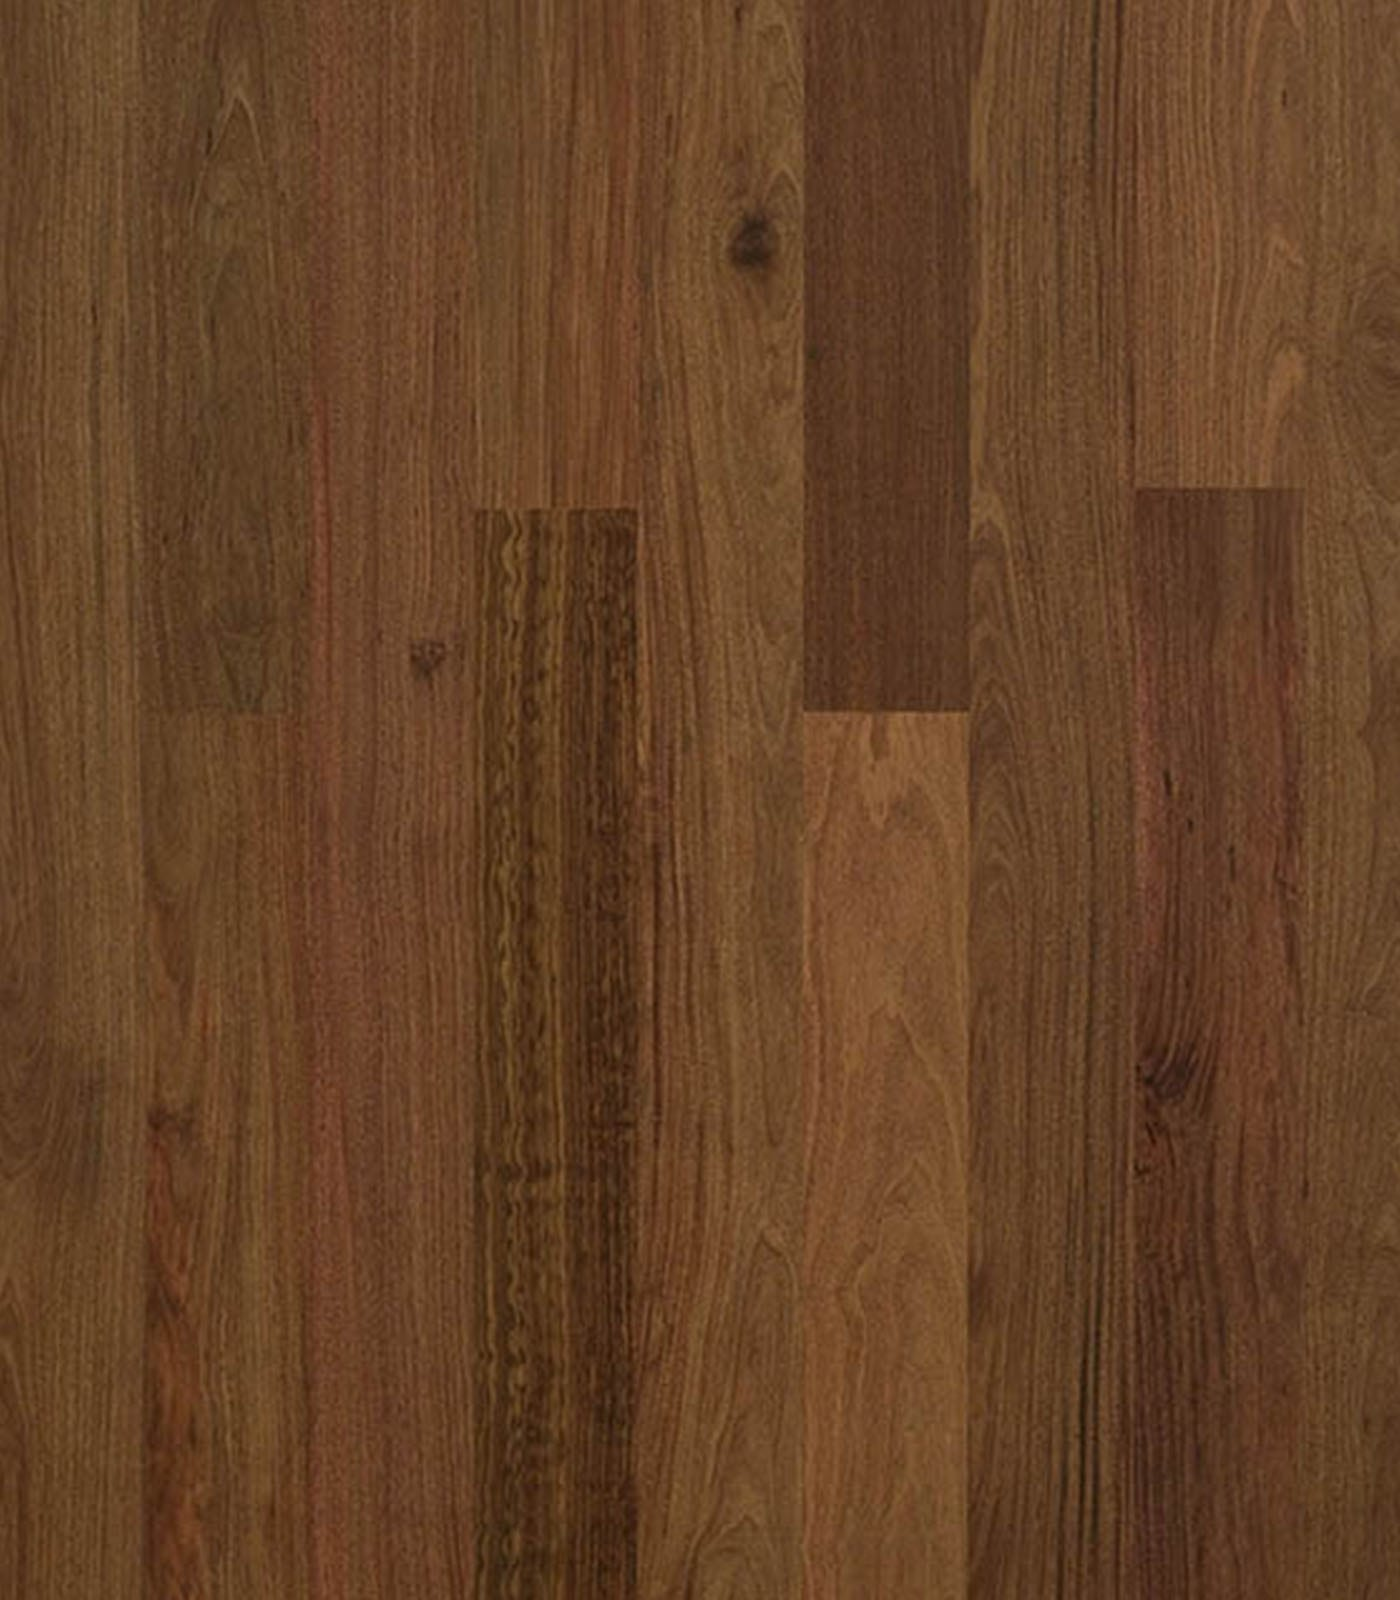 Santos Mahogany-engineered hardwood floors-flat